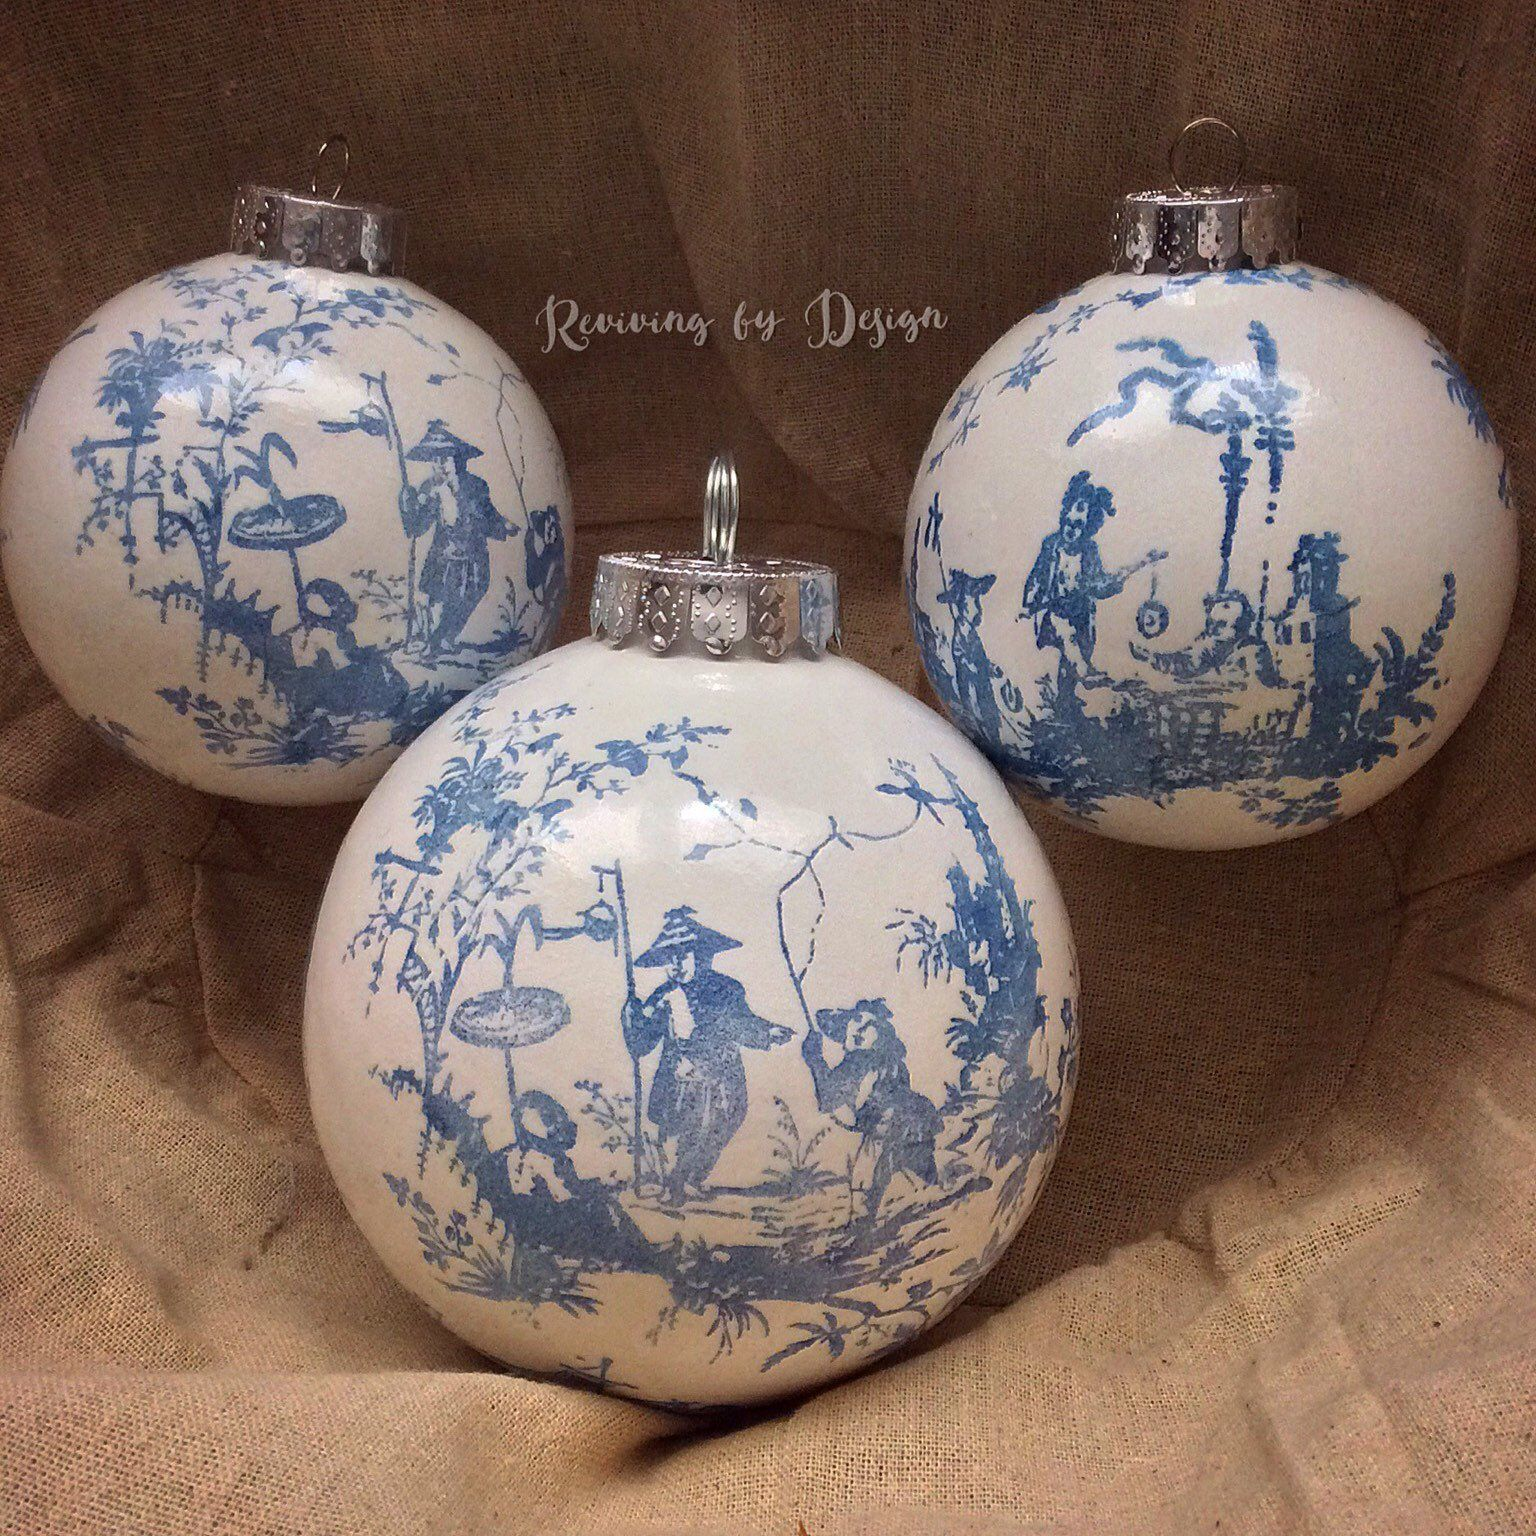 Old World Elegance: Set Of 3 Christmas Chinoiserie Globe Ornaments, Home Decor